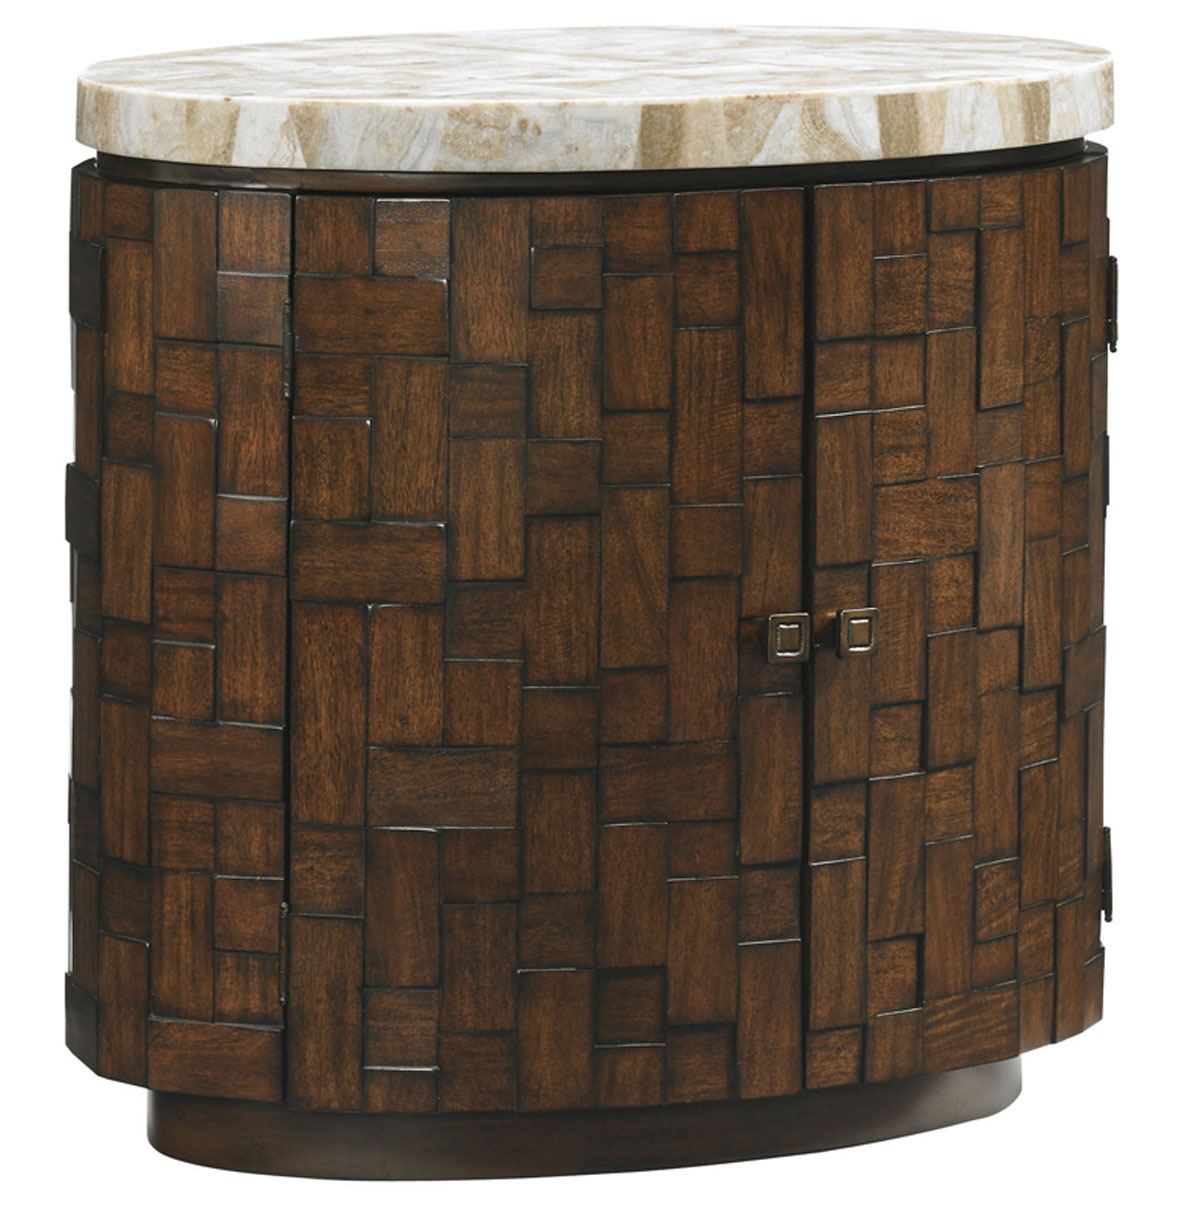 BANYAN OVAL ACCENT TABLE